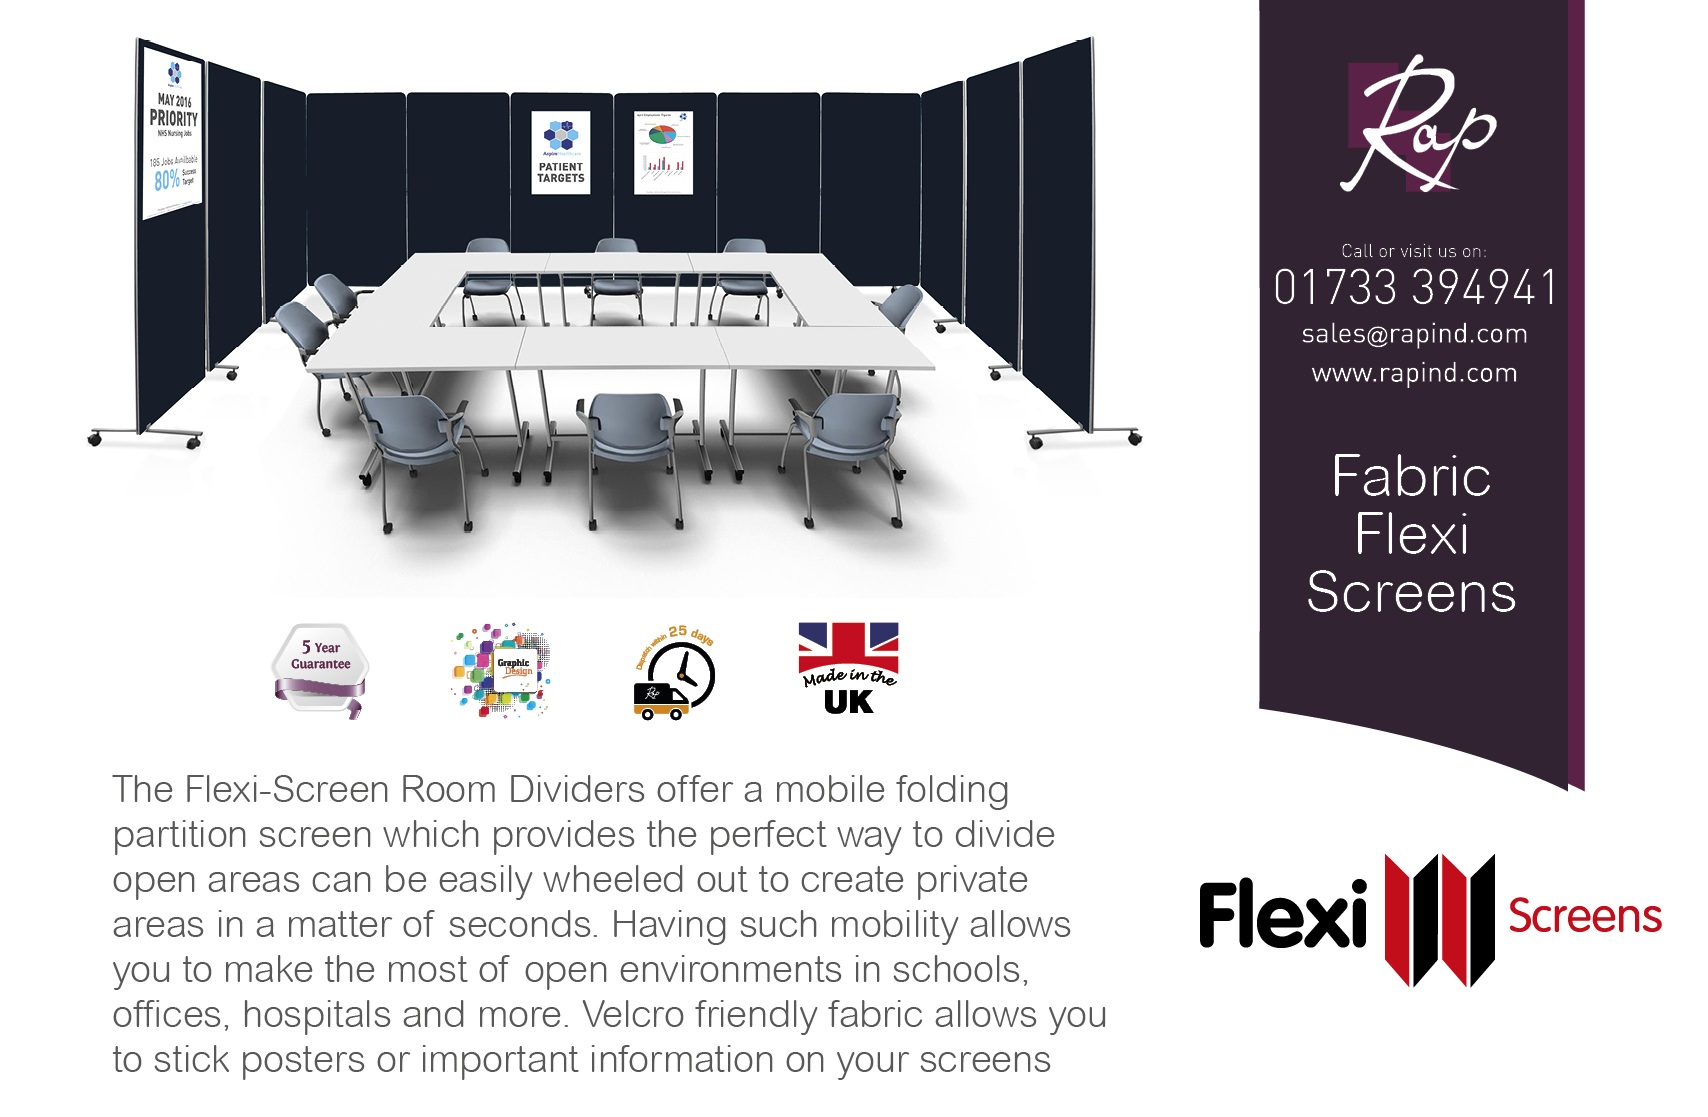 Flexi Screens Generic Advert - Fabric